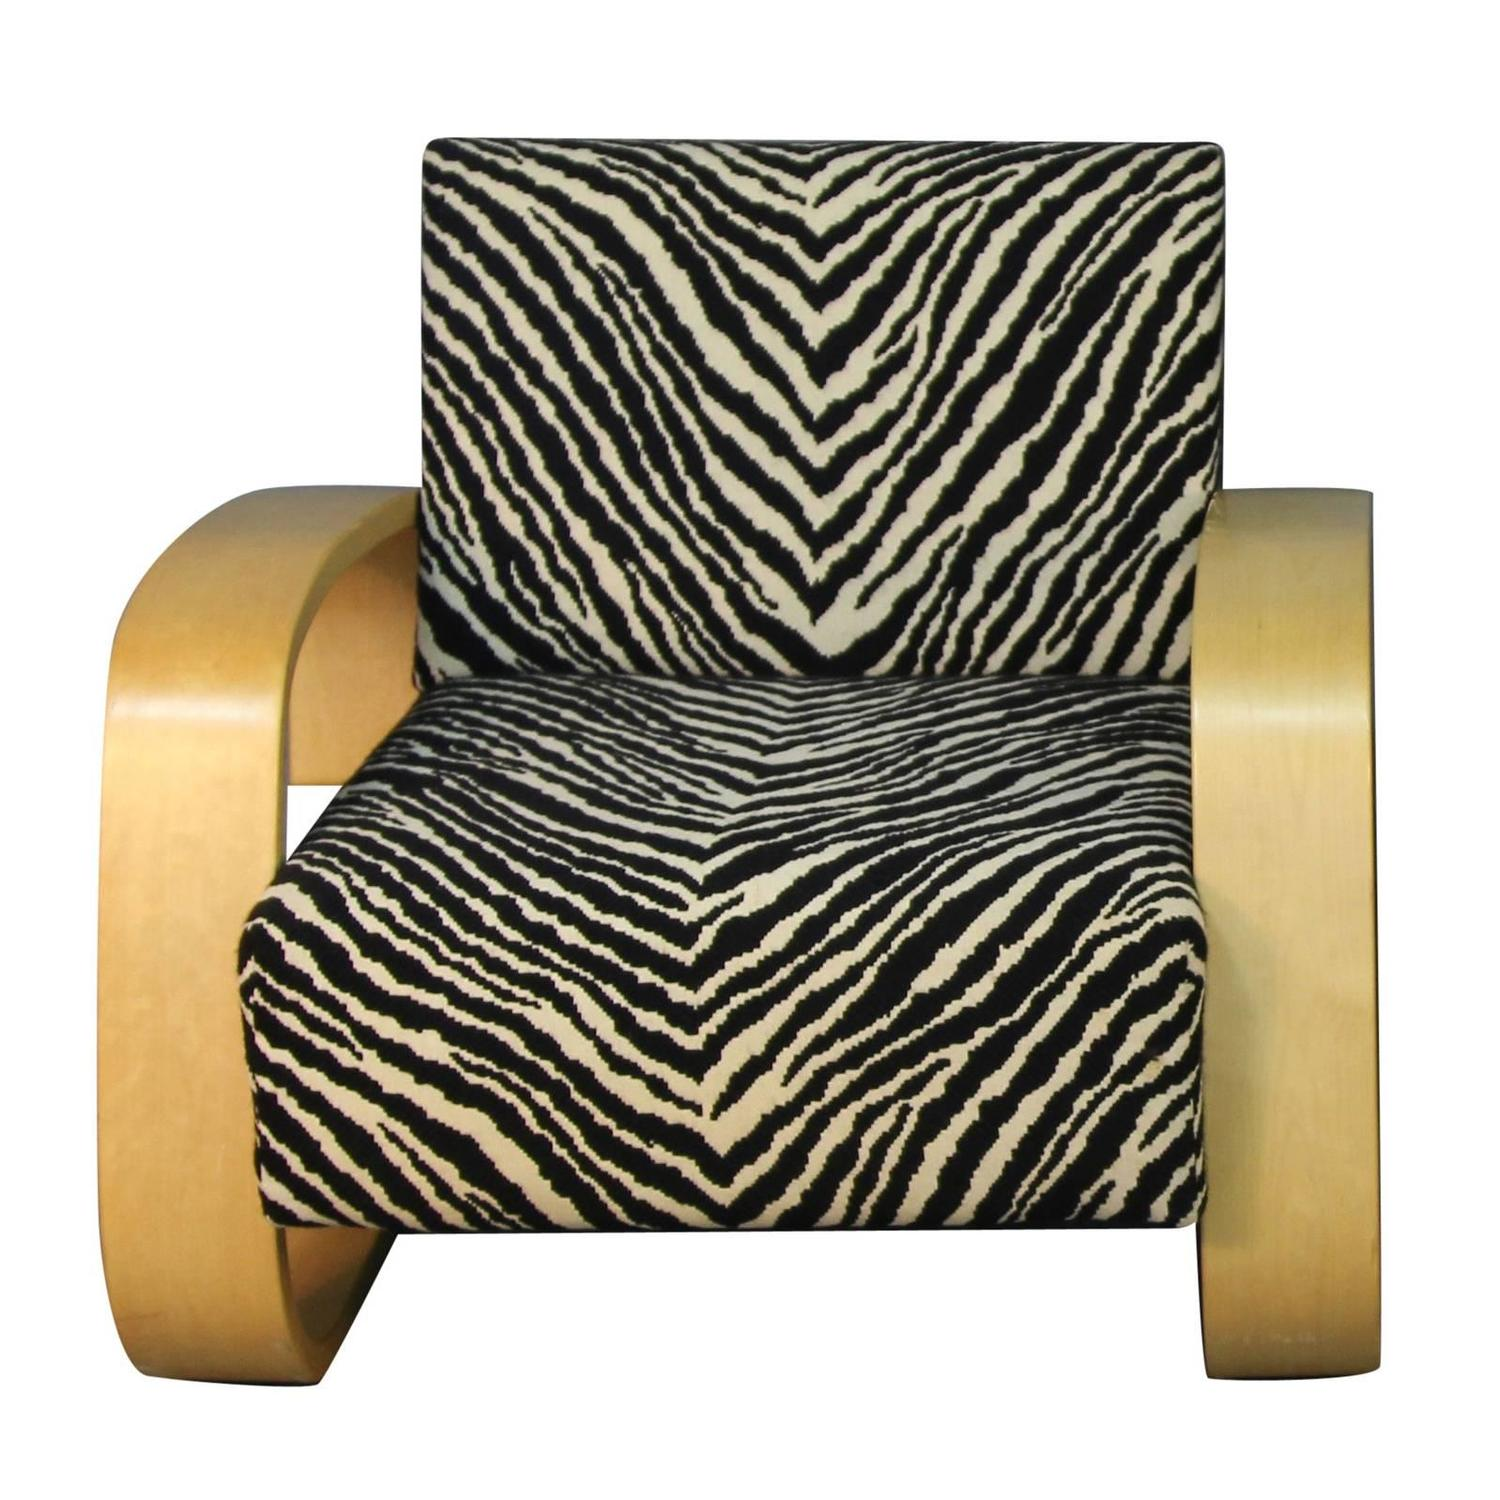 Alvar Aalto Tank Chair with Zebra Pattern Upholstery at 1stdibs